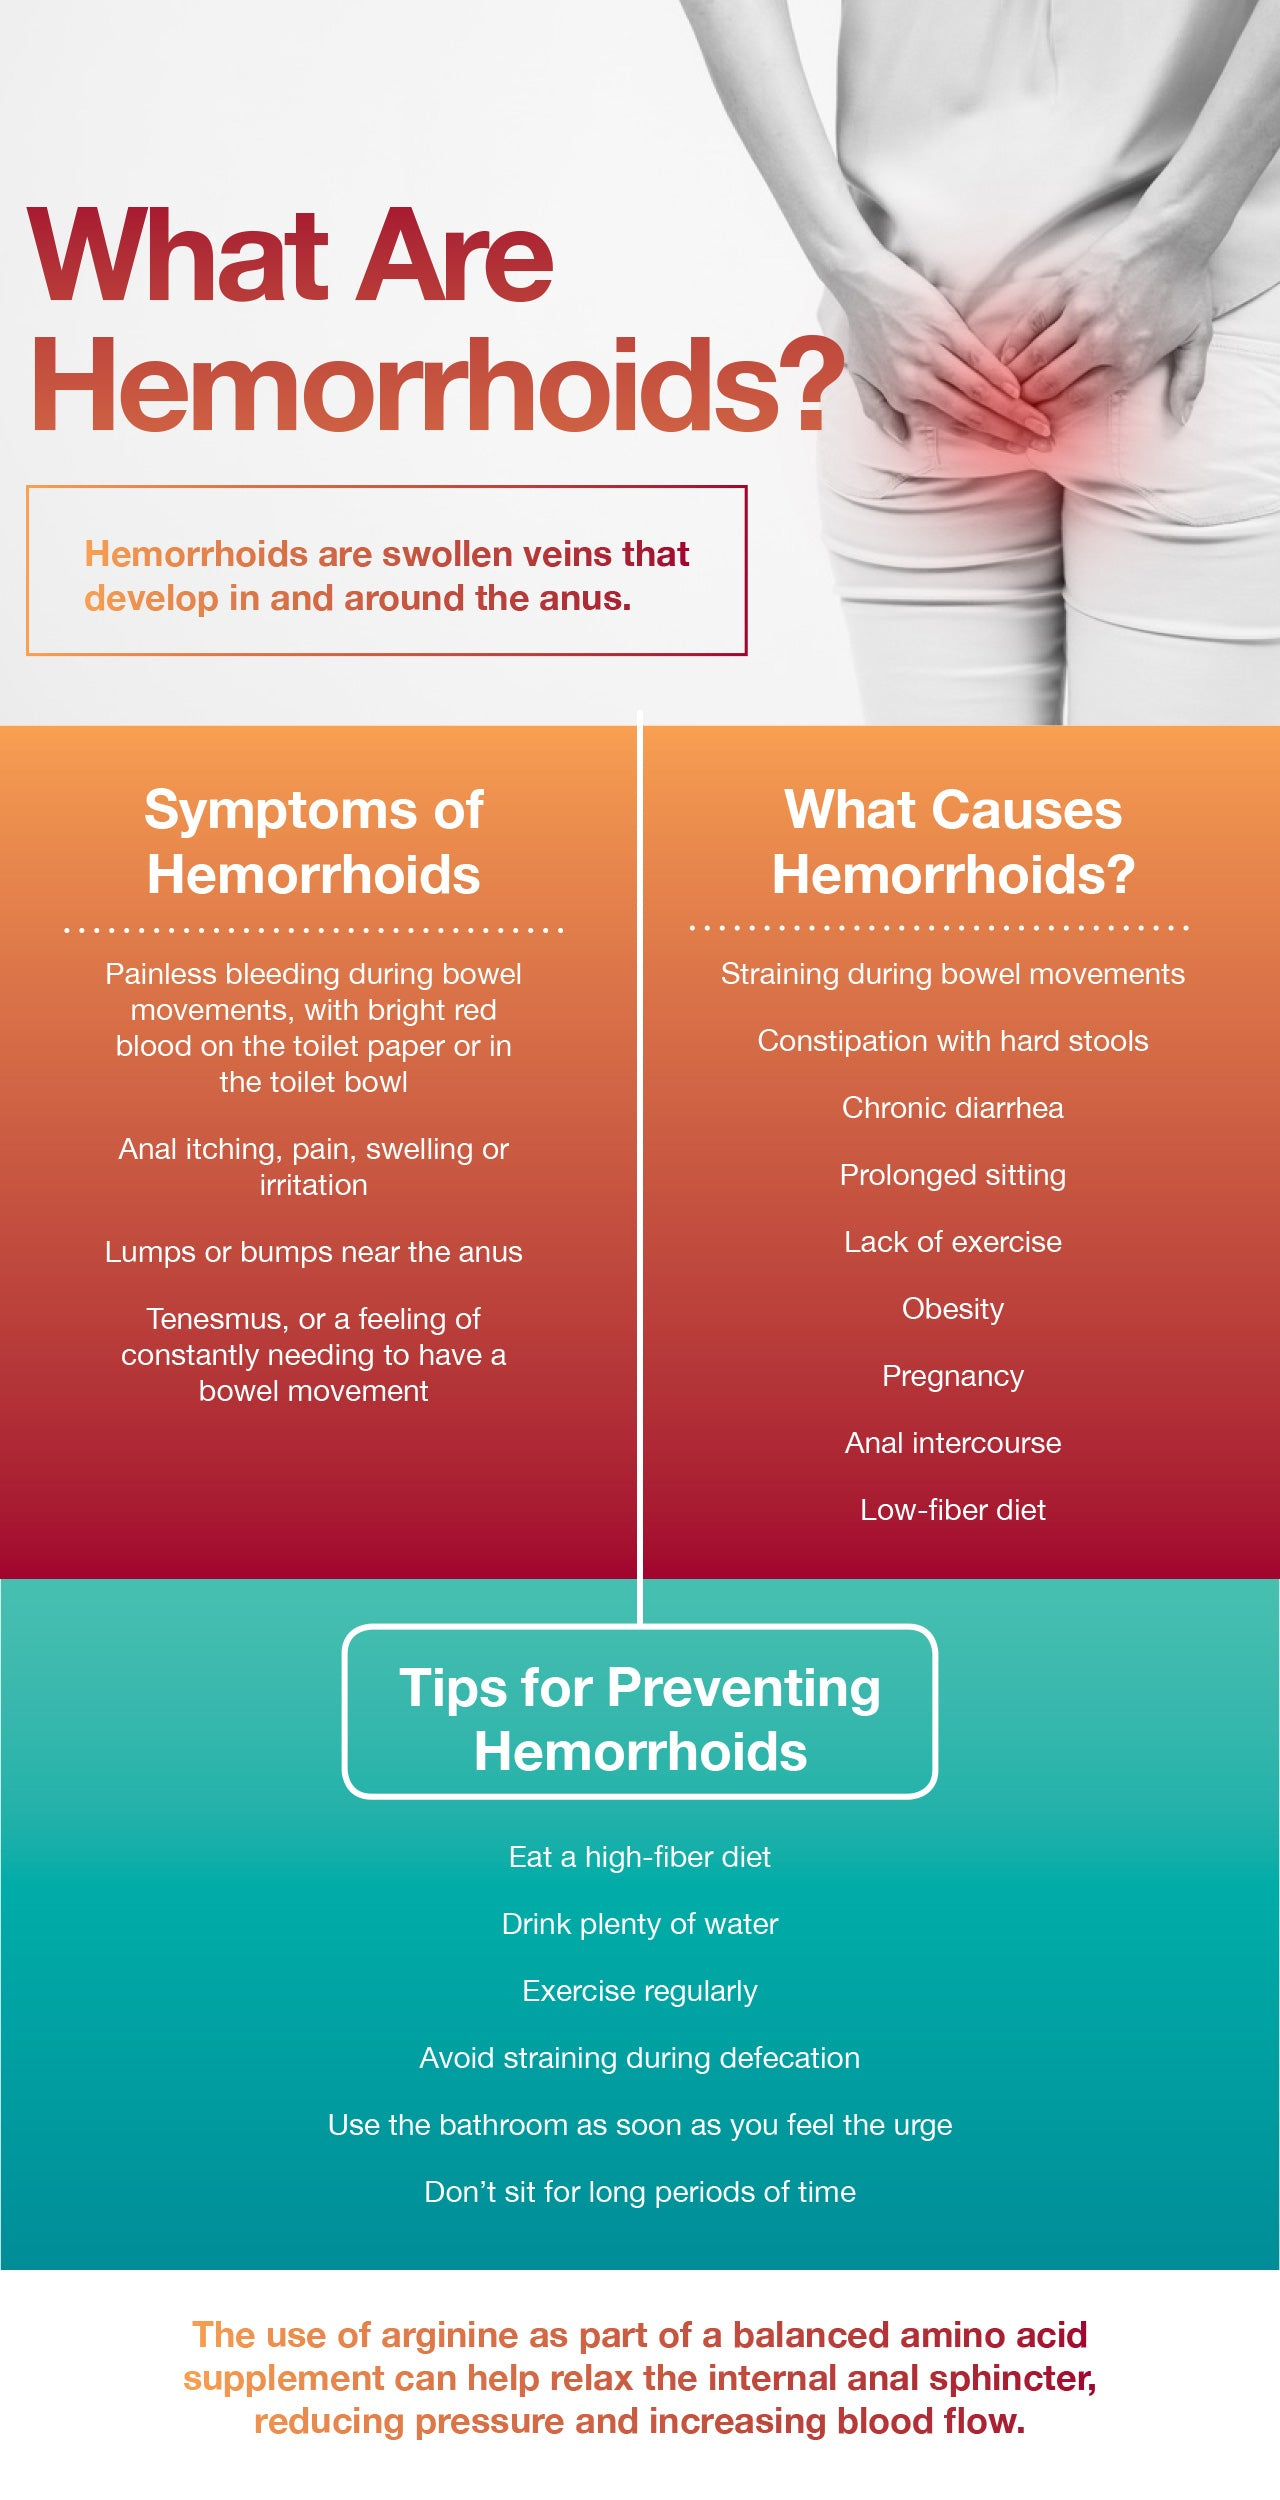 Hemorrhoid causes, treatment, prevention